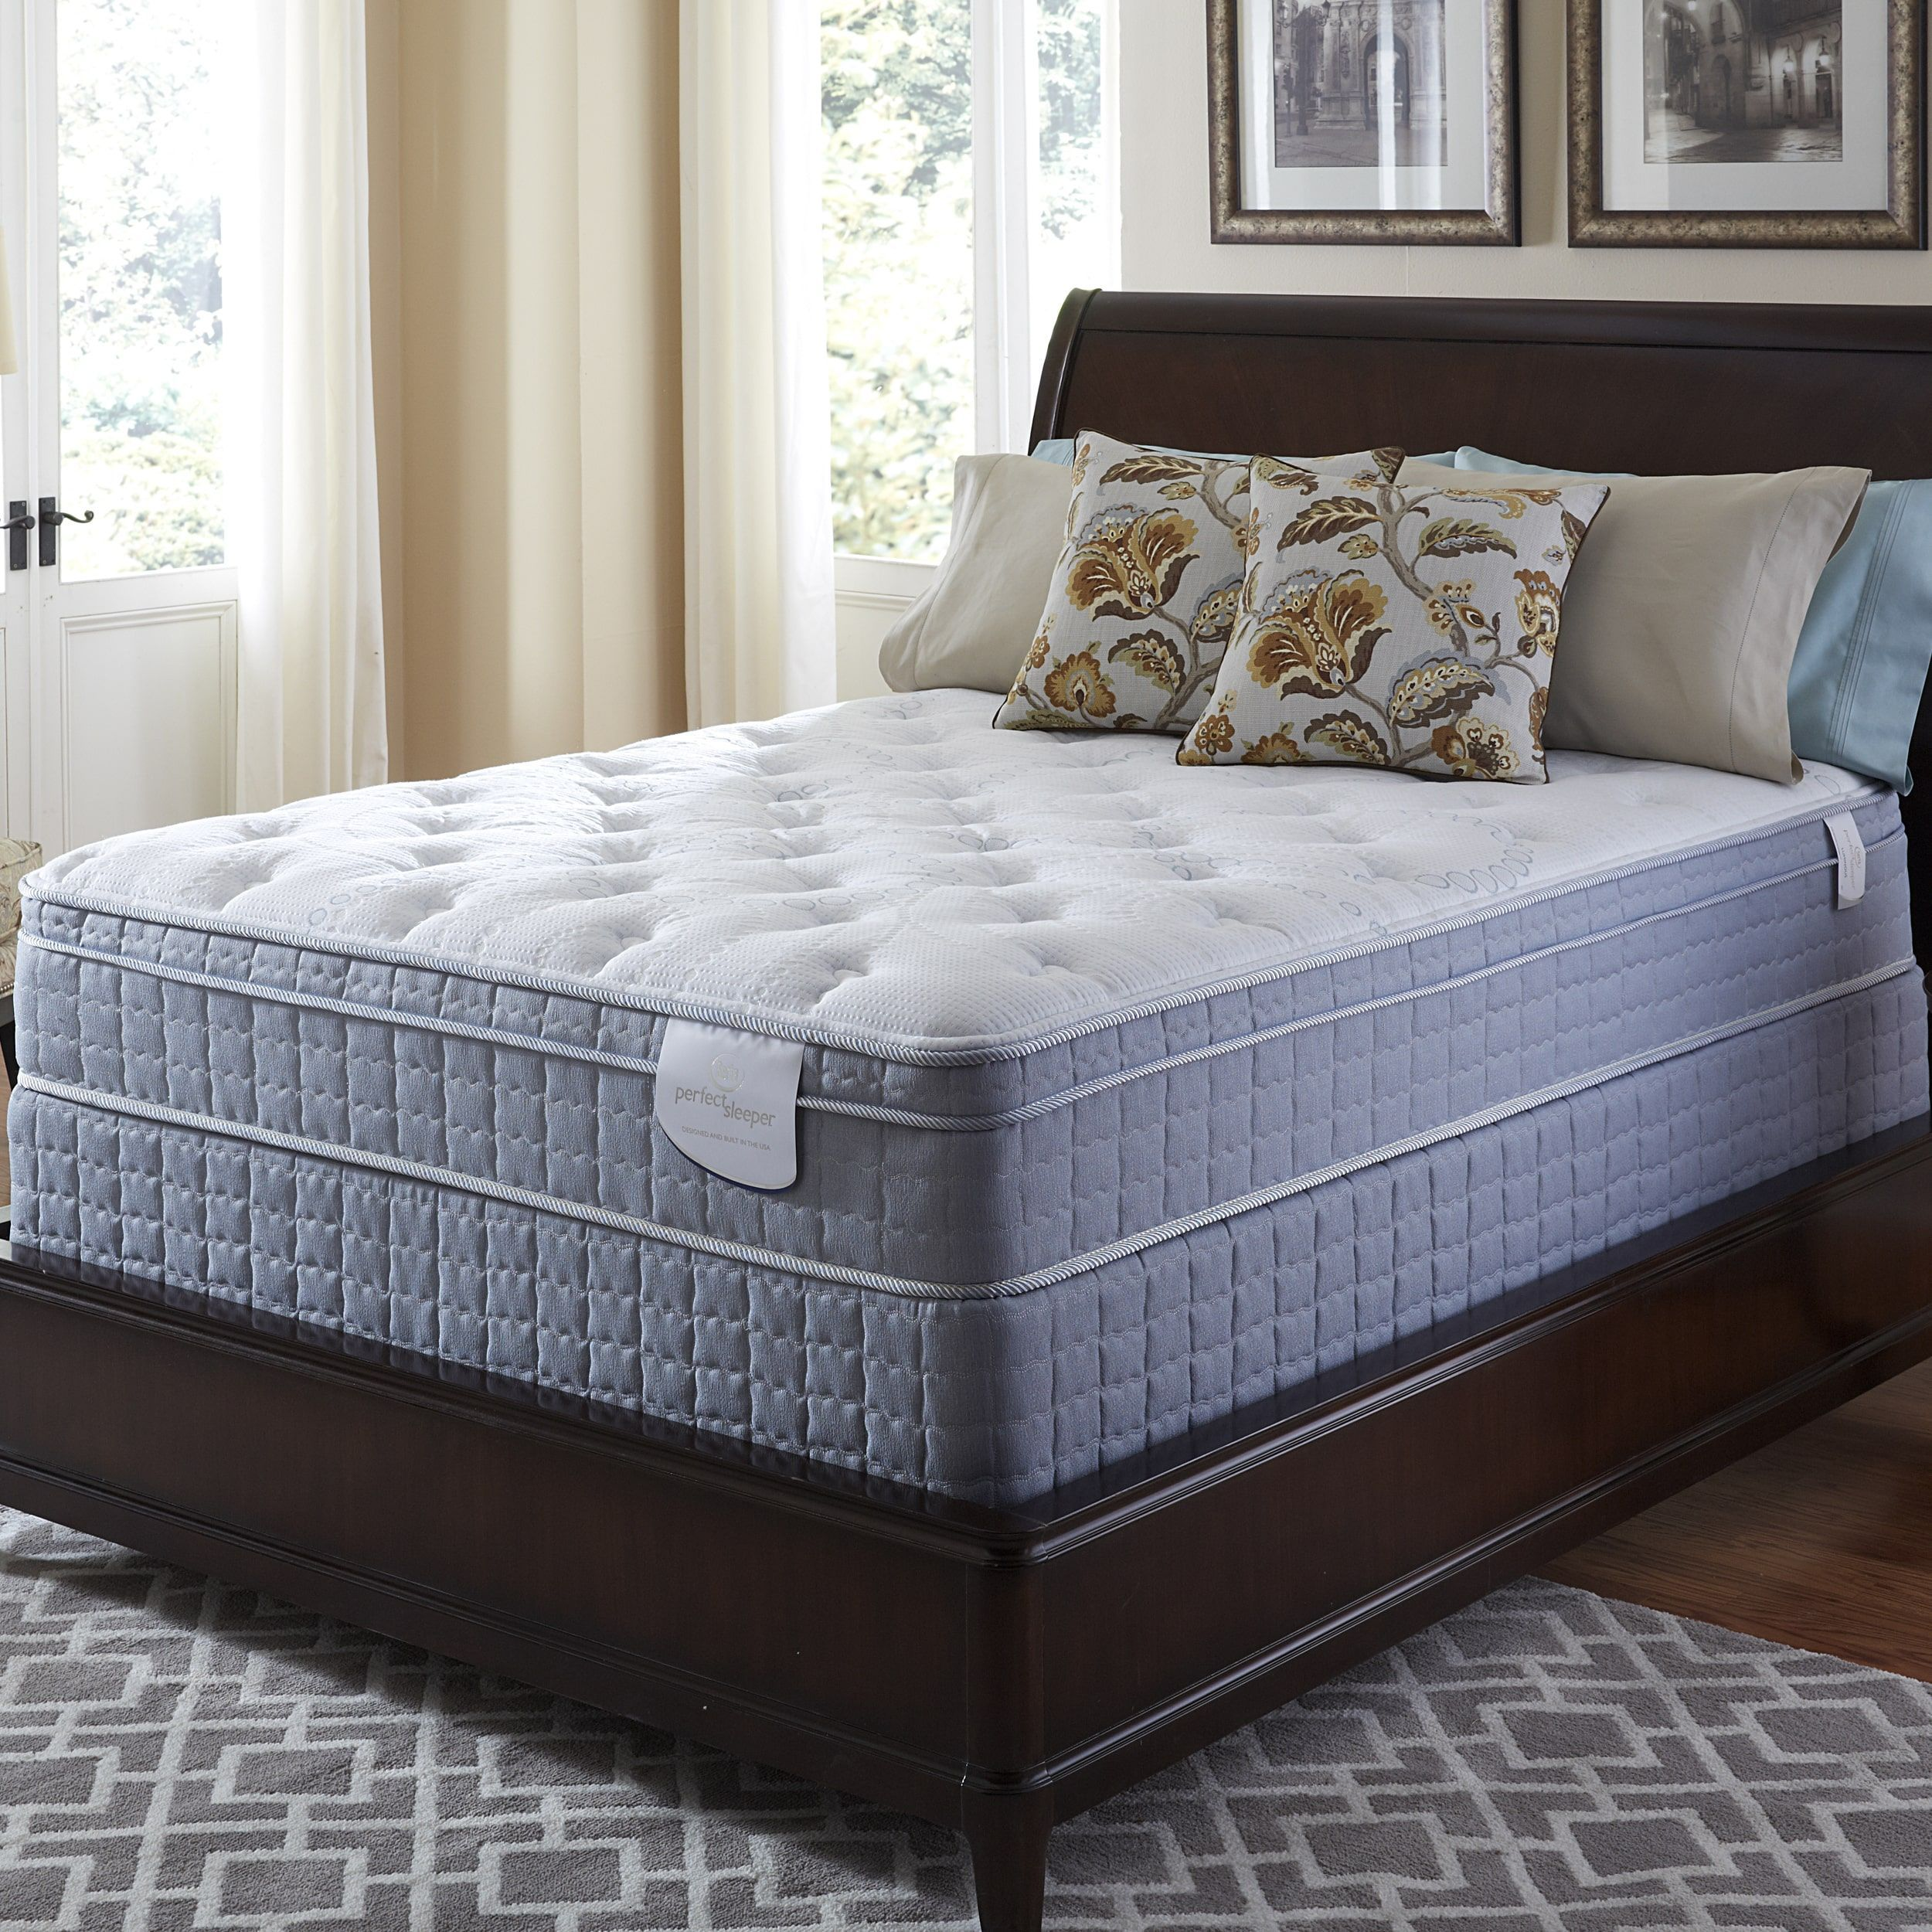 t mattress sleeper king with remodel perfect home nongzi luxury co size serta ideas in